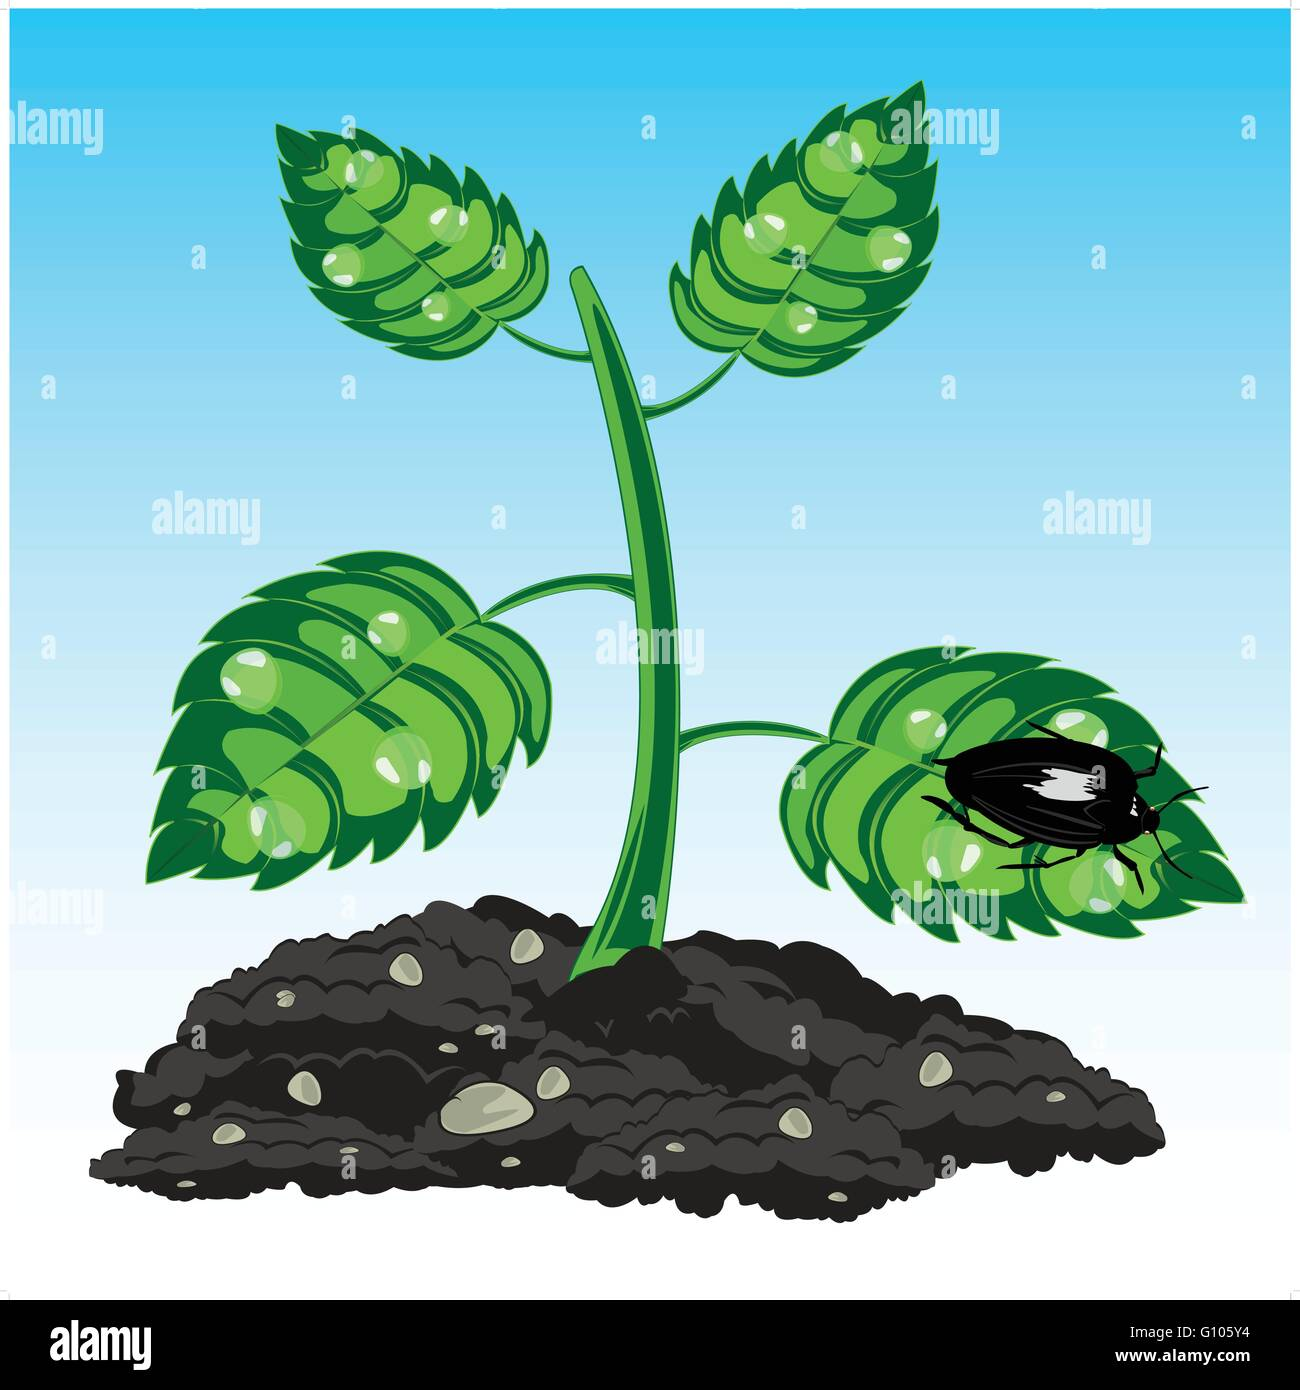 Seedling of the plant with dew and insect on sheet - Stock Vector